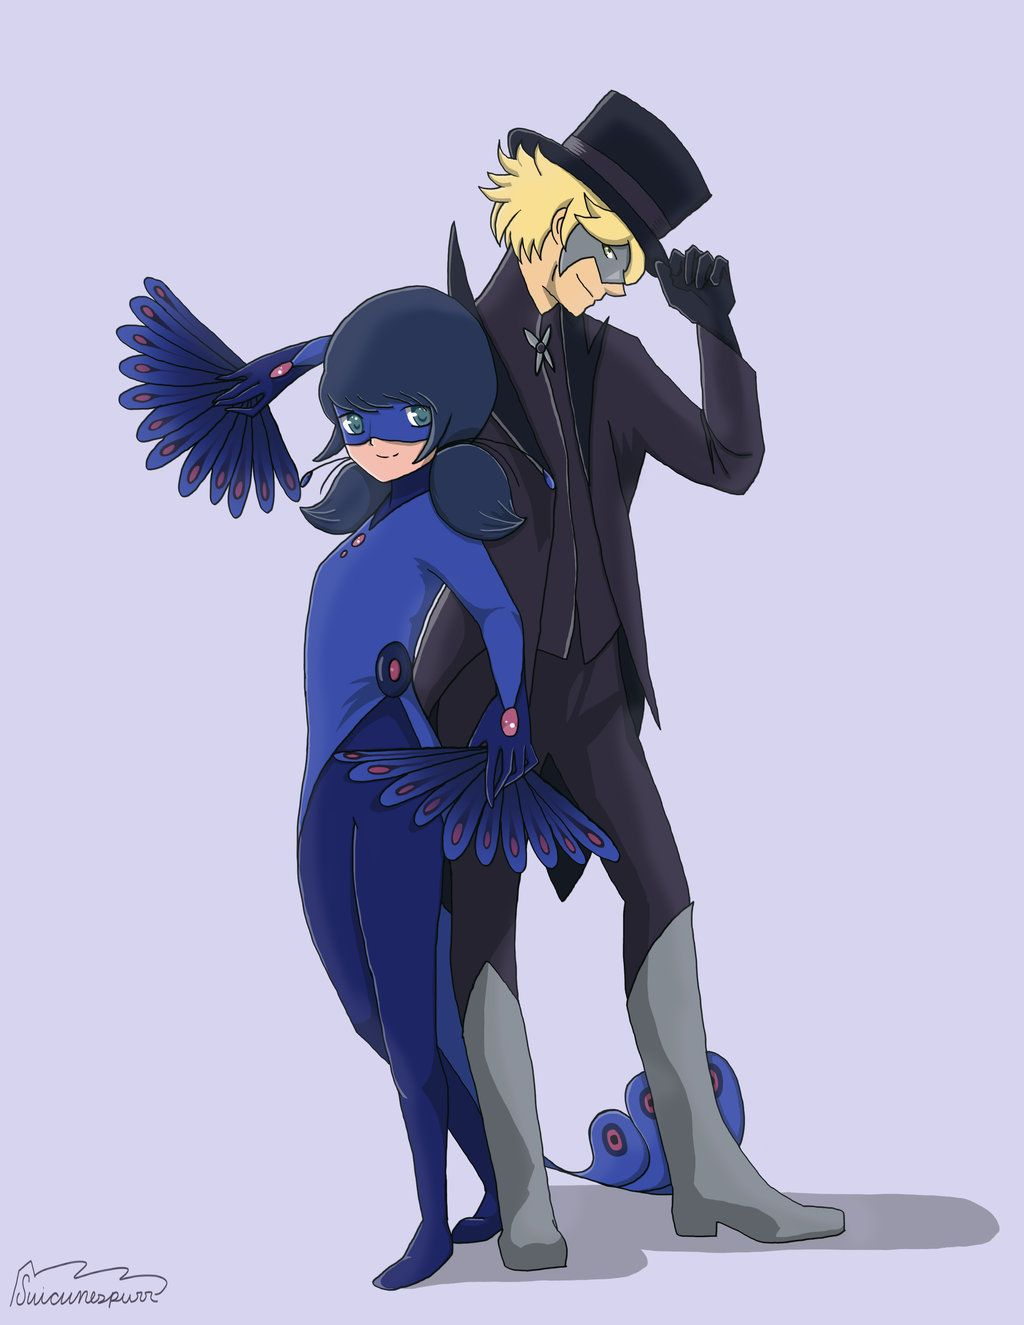 Meanwhile, in an Alternate Universe where Marinette and Adrien